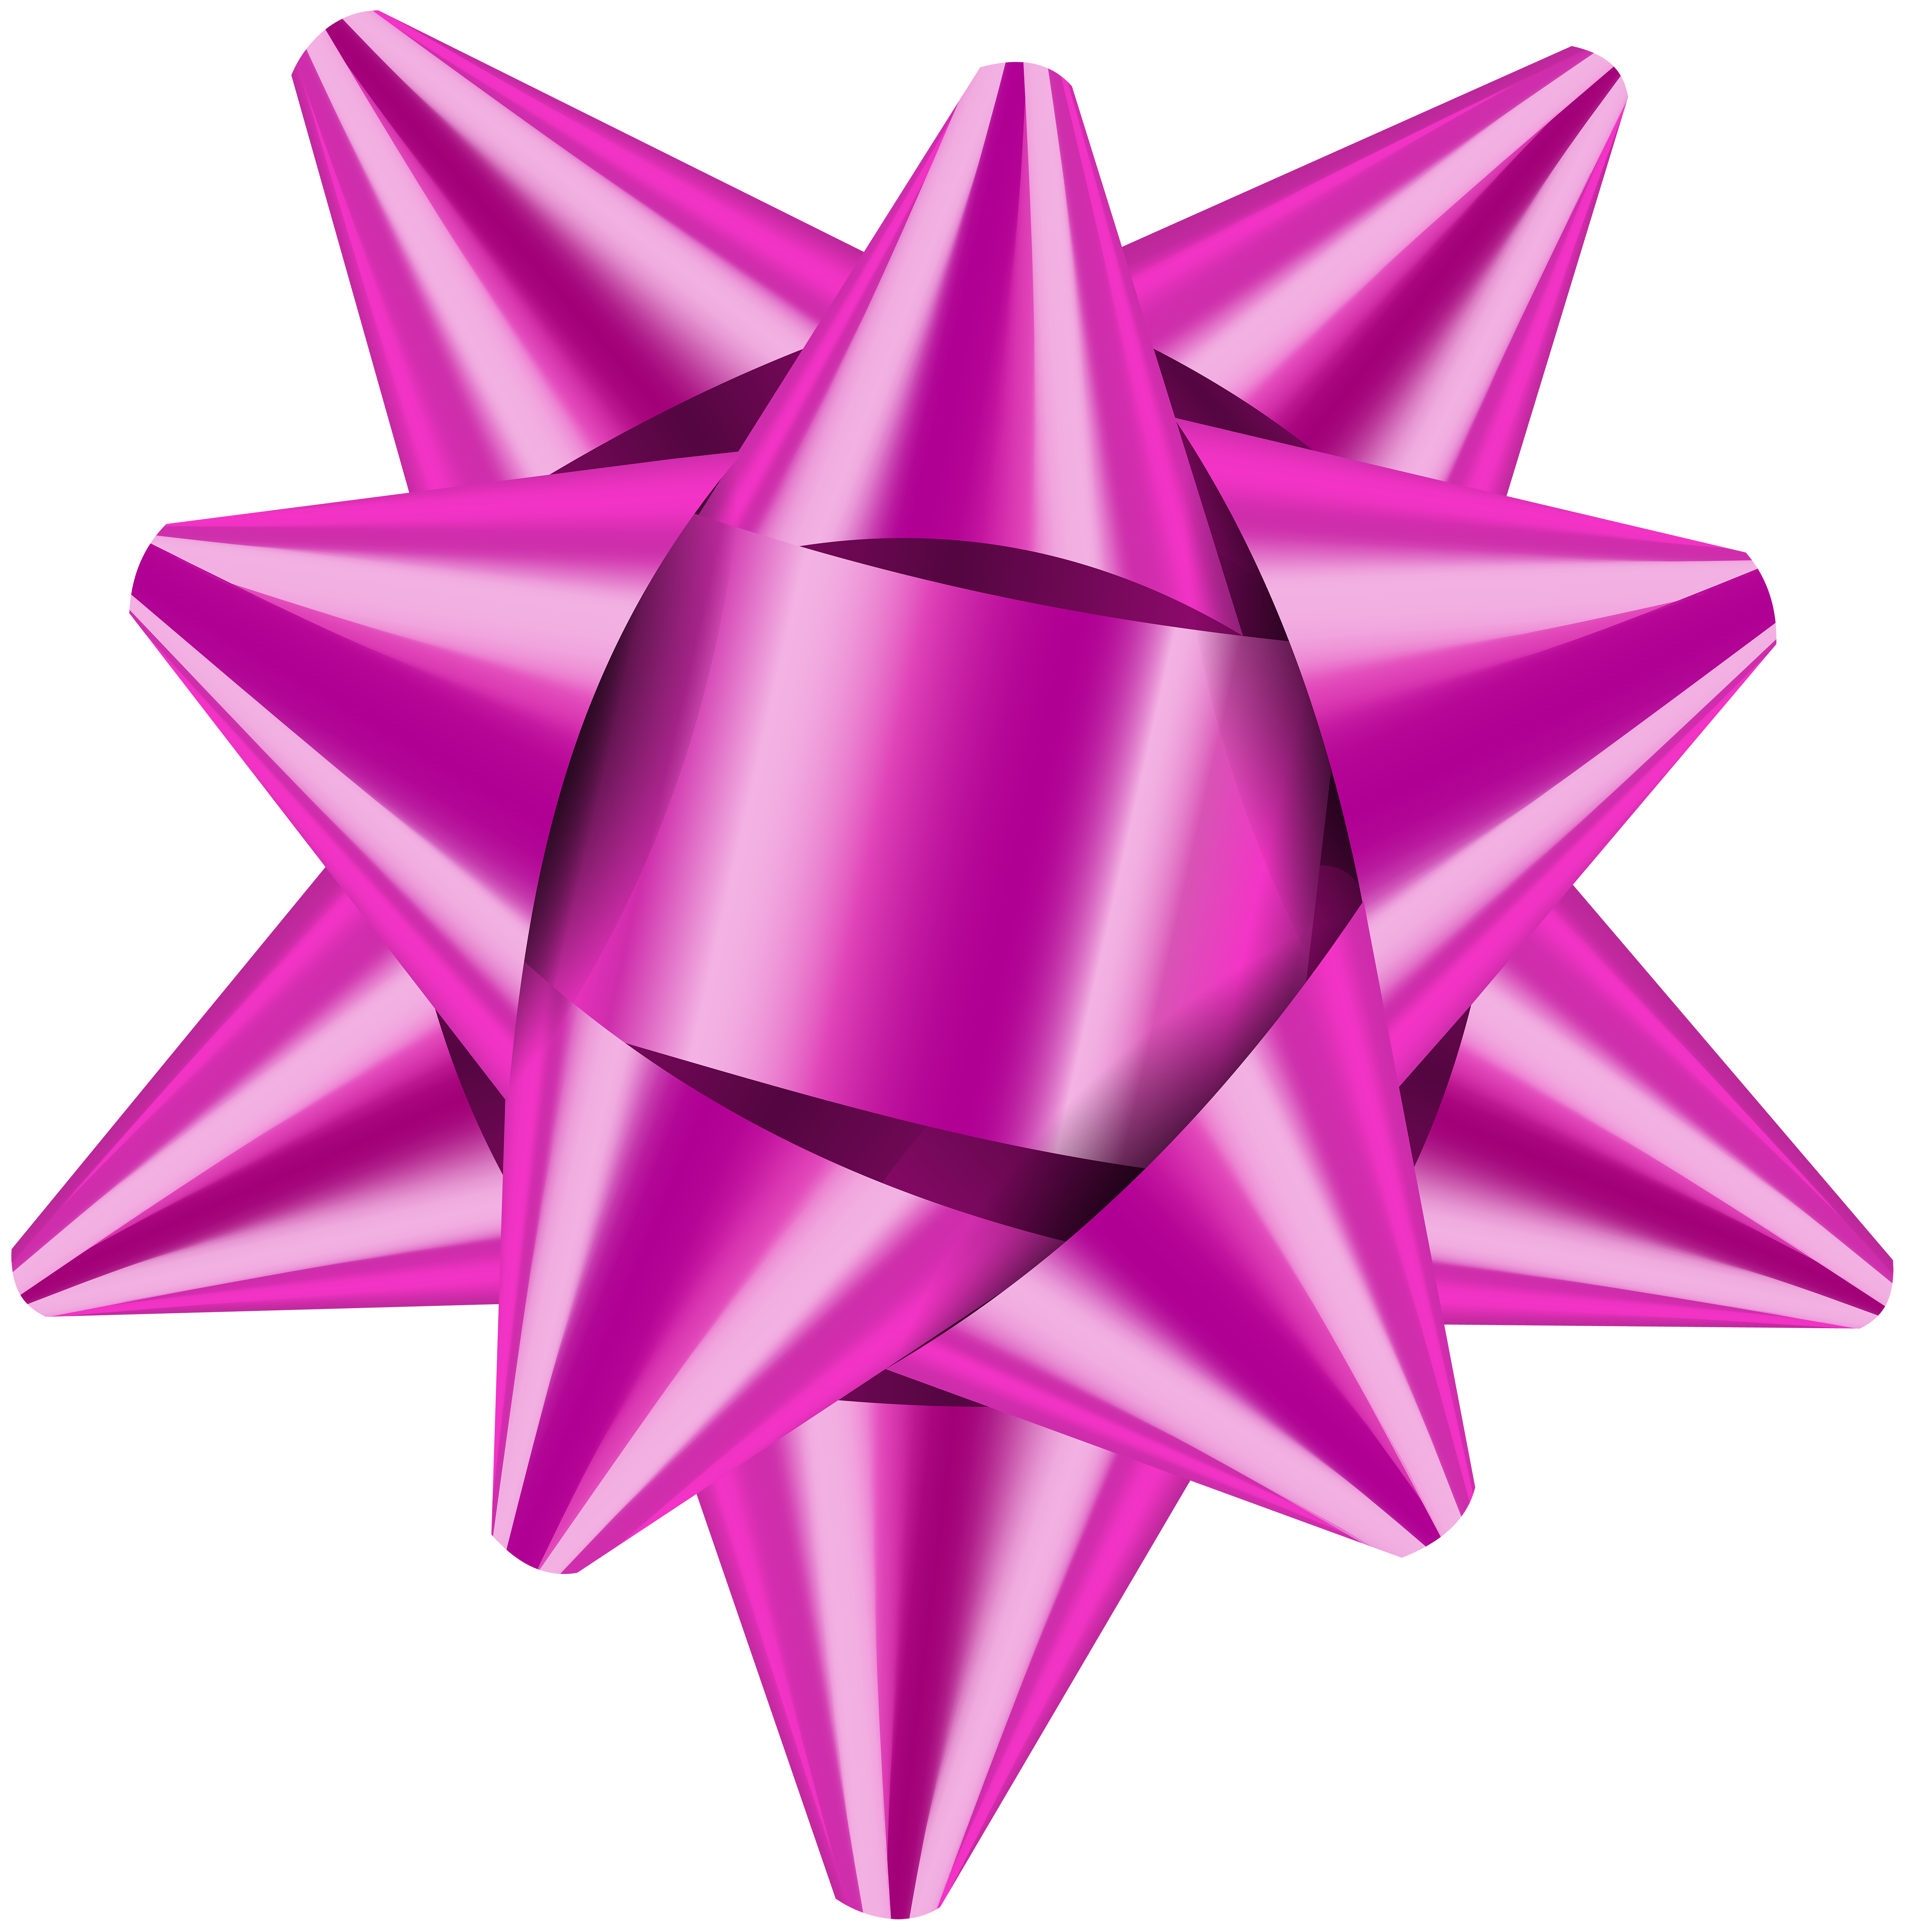 Gift Bow PNG Clip Art Image.